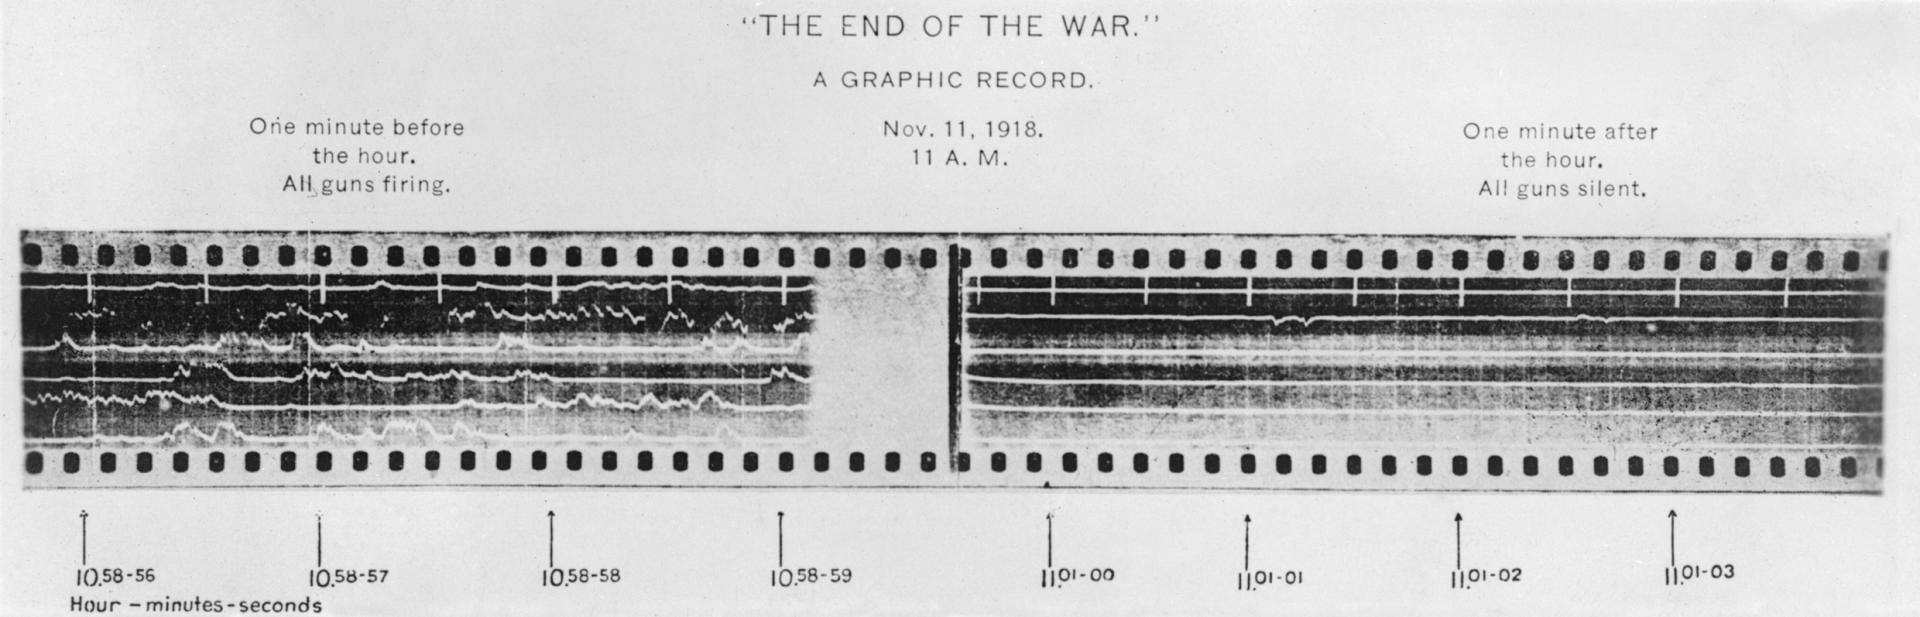 Photograph of the record by sound ranging of artillery activity on the American front near the River Moselle for one minute before and one minute after the Armistice at 11am on 11th November 1918